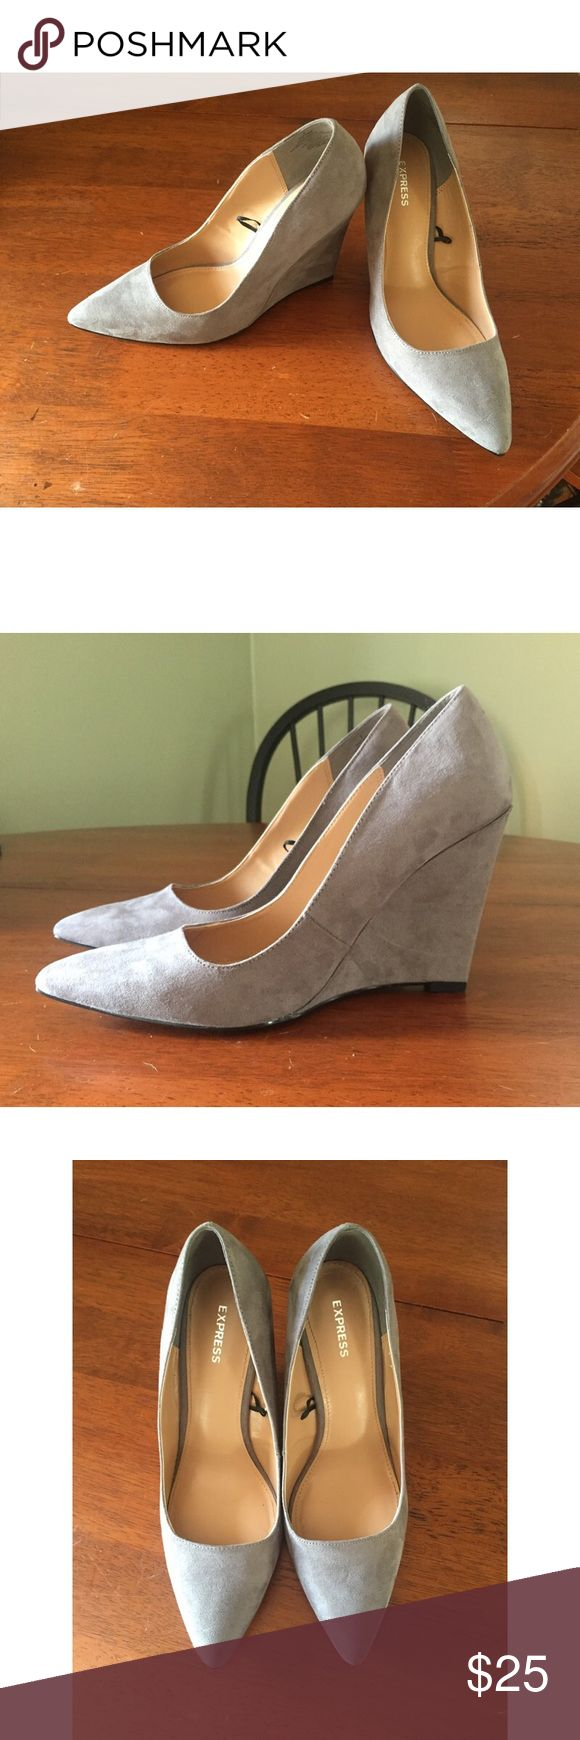 Express Pointed Wedges In great condition! Only worn twice. No damages or stains etc. Express Shoes Wedges